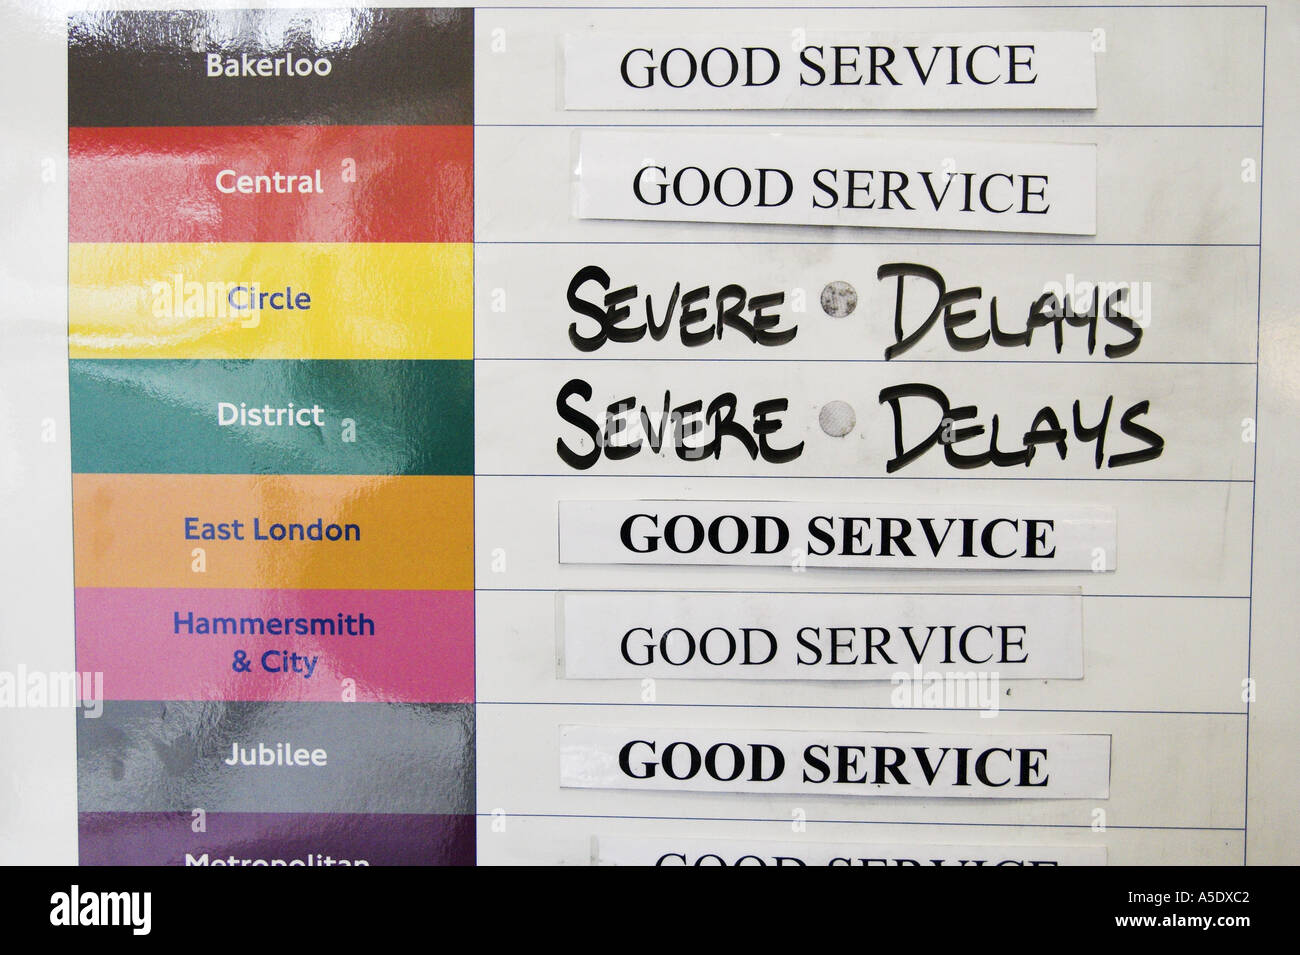 Underground Tube Subway delays noticeboard in London UK - Stock Image